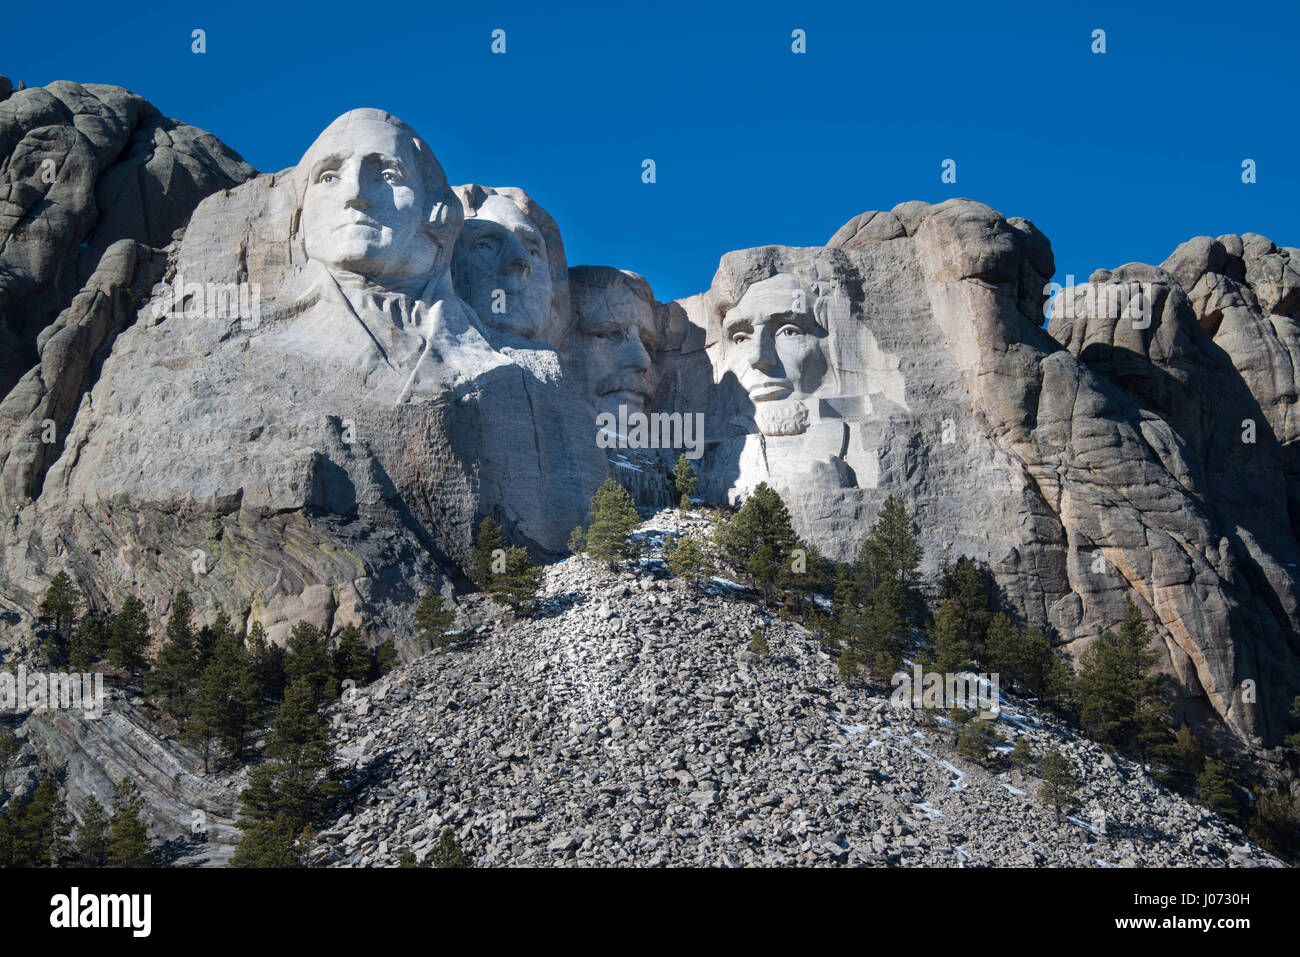 Mount Rushmore Memorial Monument is a popular tourist destination in the Black Hills of South Dakota - Stock Image